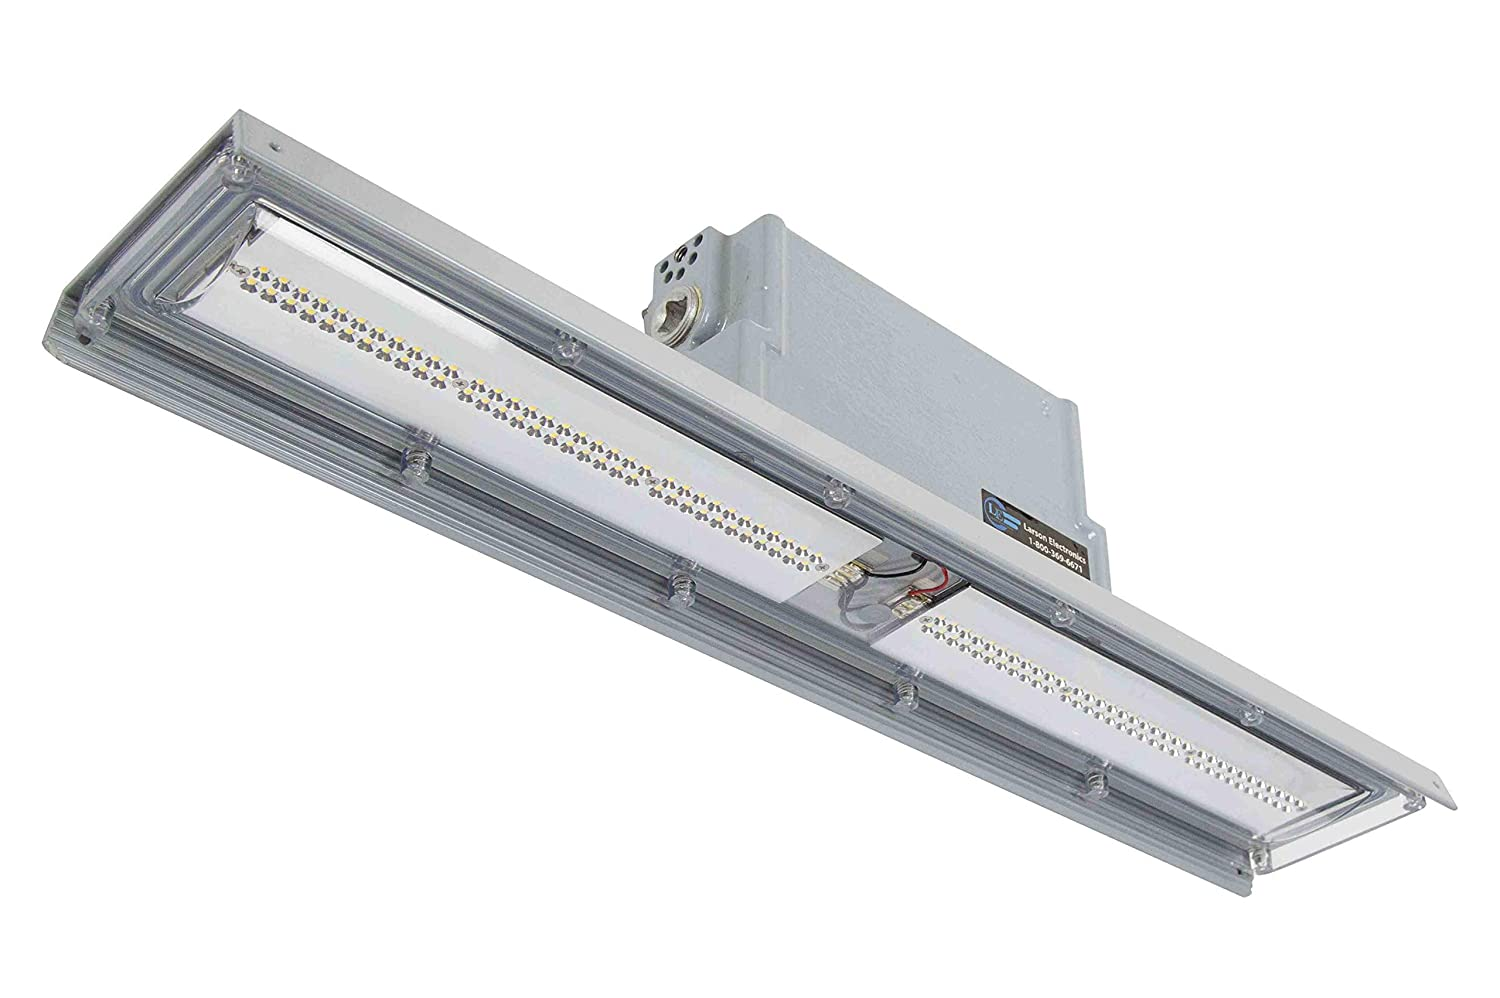 Explosion proof low profile linear led light pendant mounted 3600 lumens class 2 div 1 commercial bay lighting amazon com